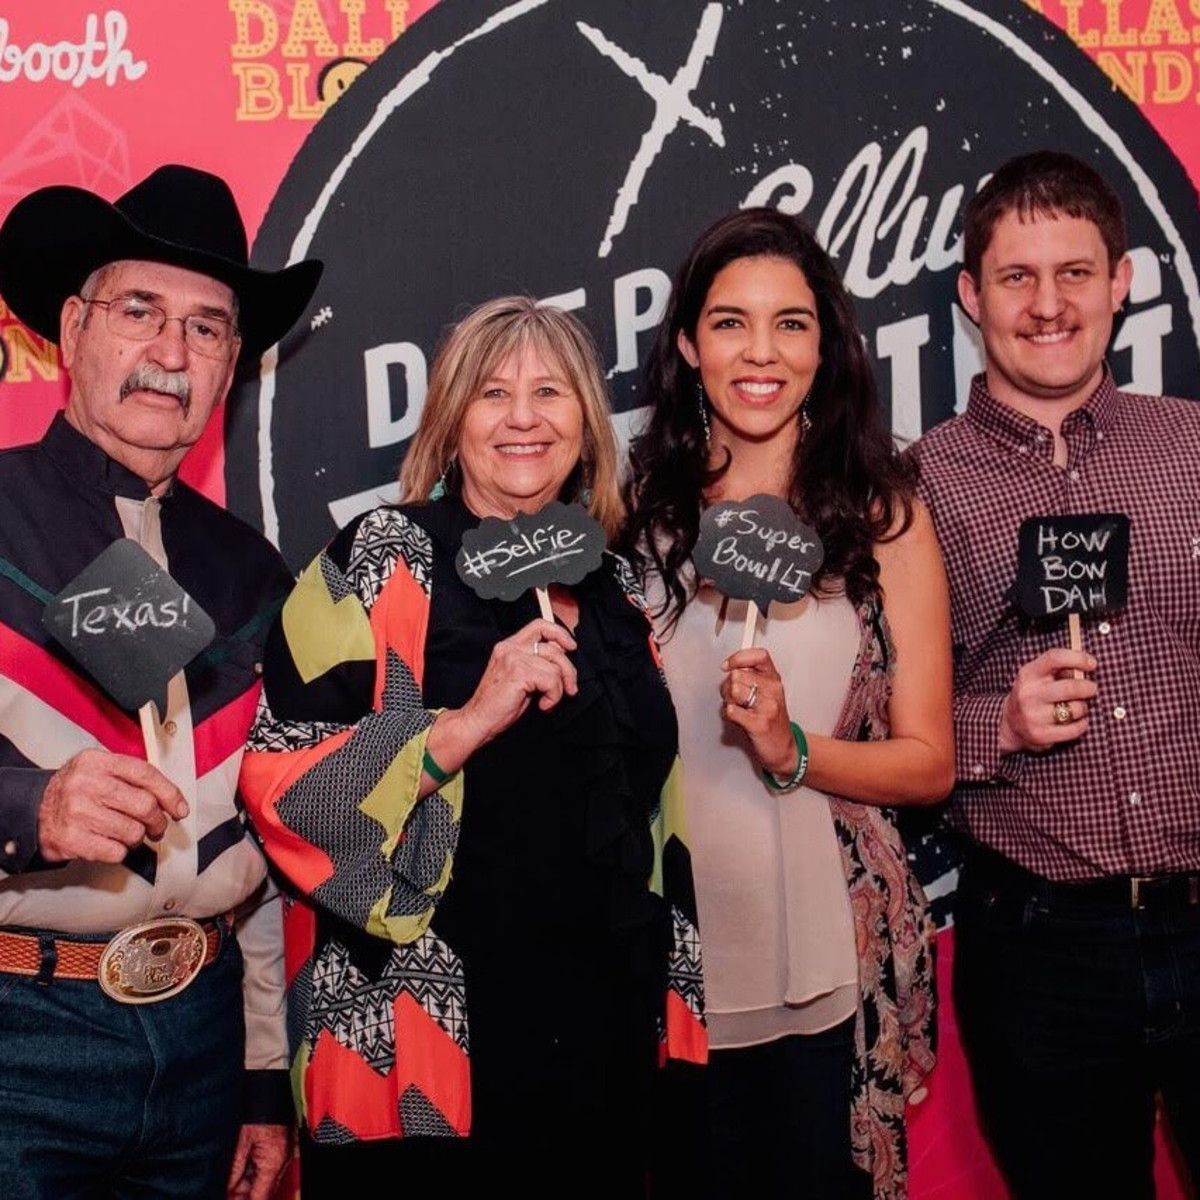 Big Texas Party Smile Booth